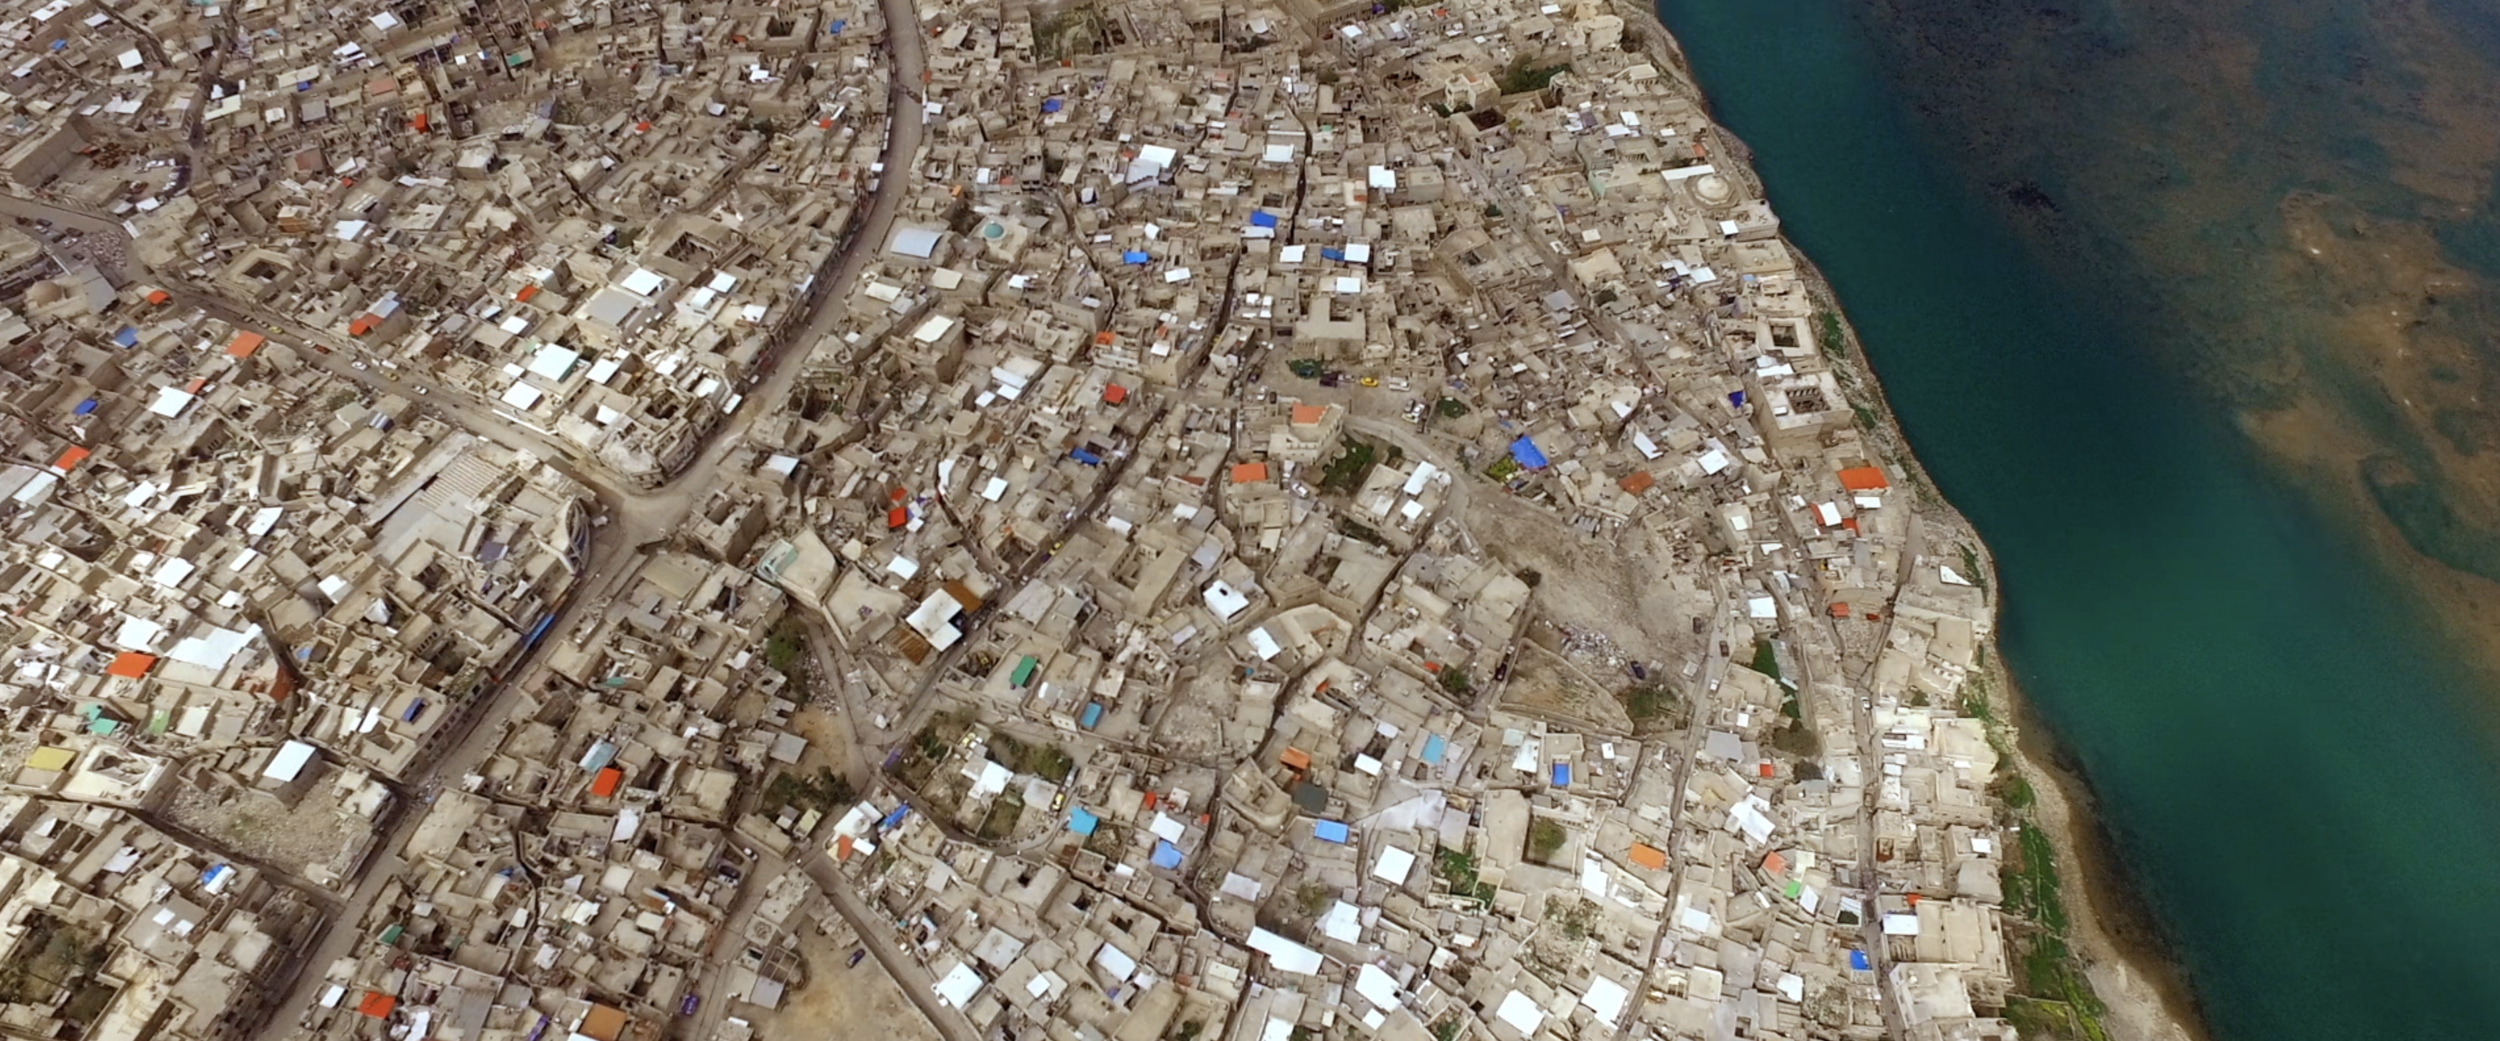 Aerial view of Mosul.png